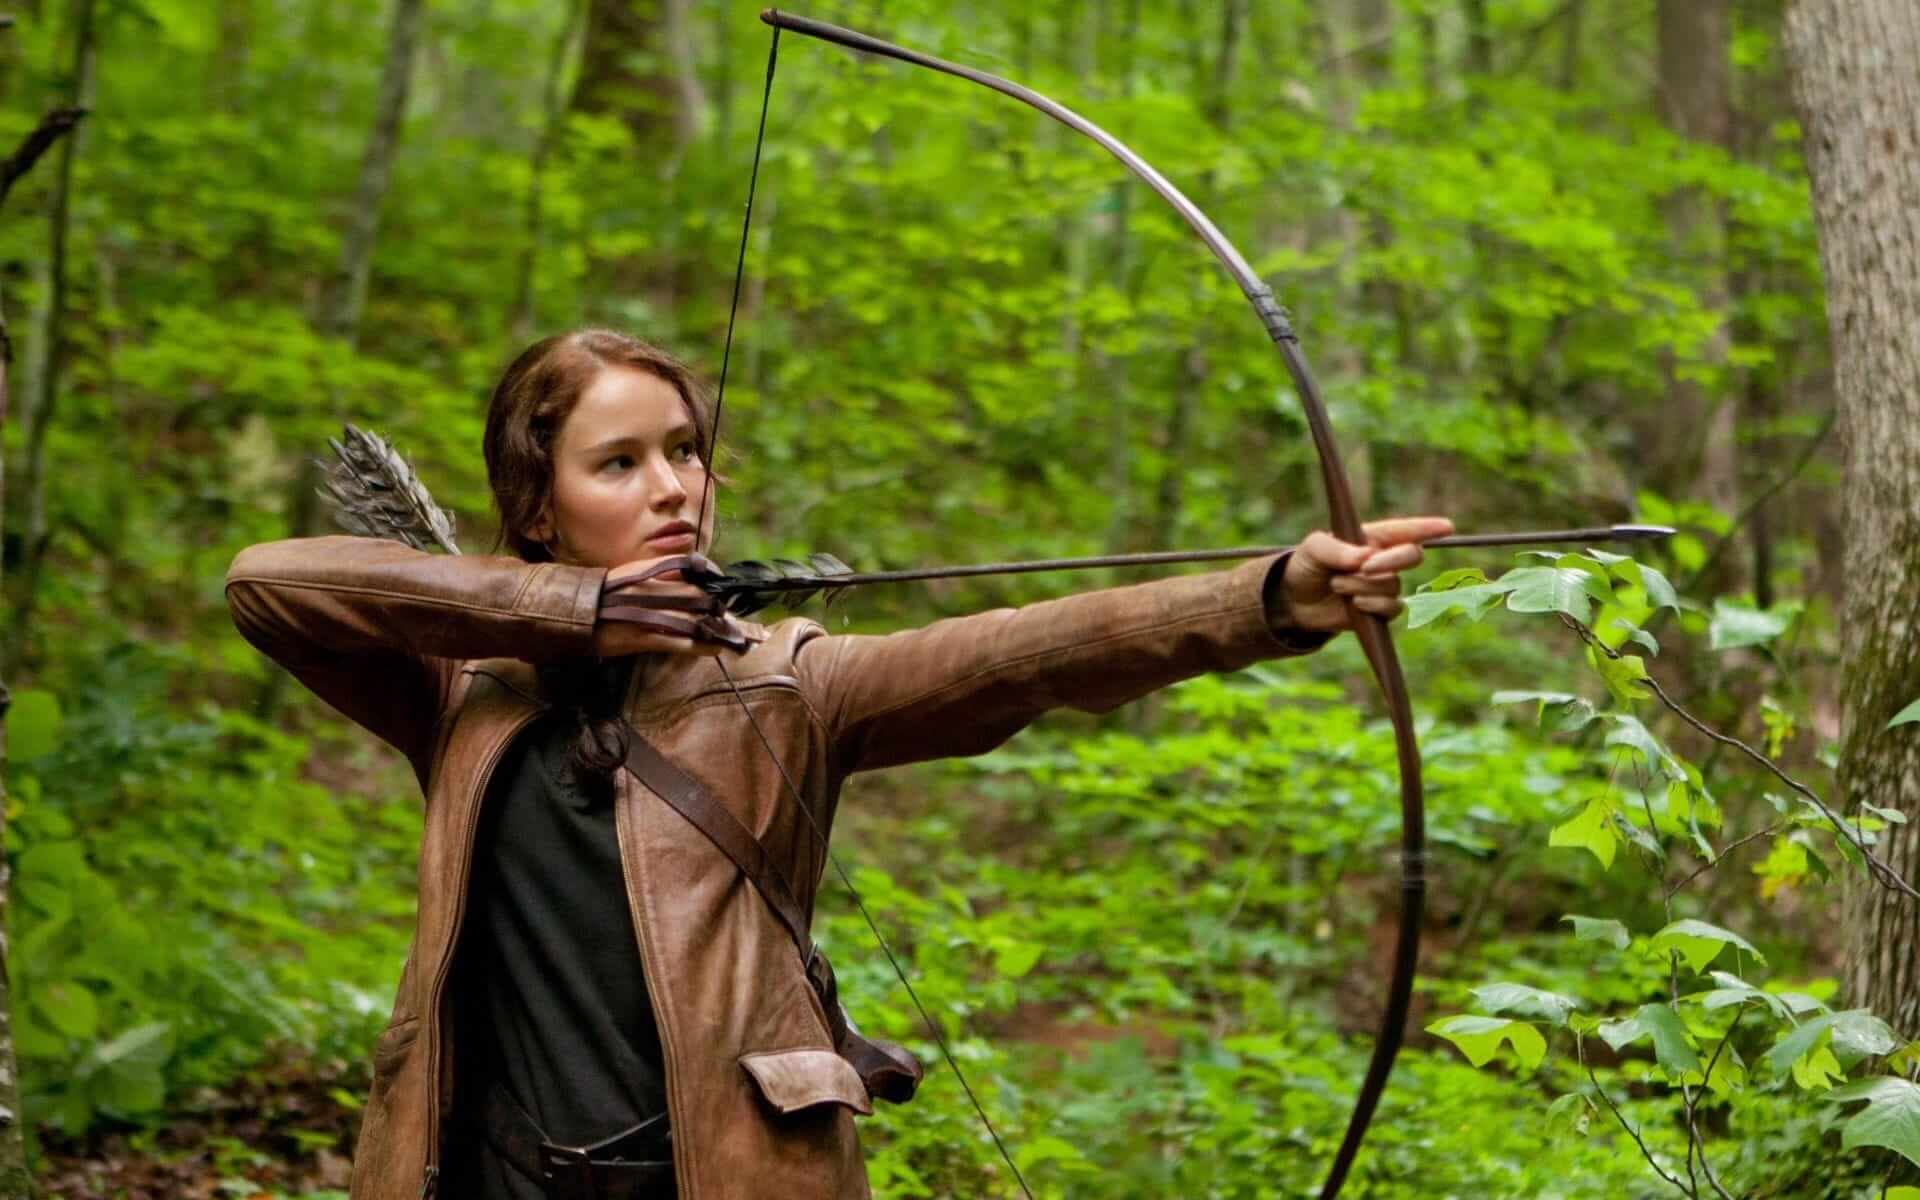 Medium Close Shot - The Art of the Camera Angle - The Hunger Games